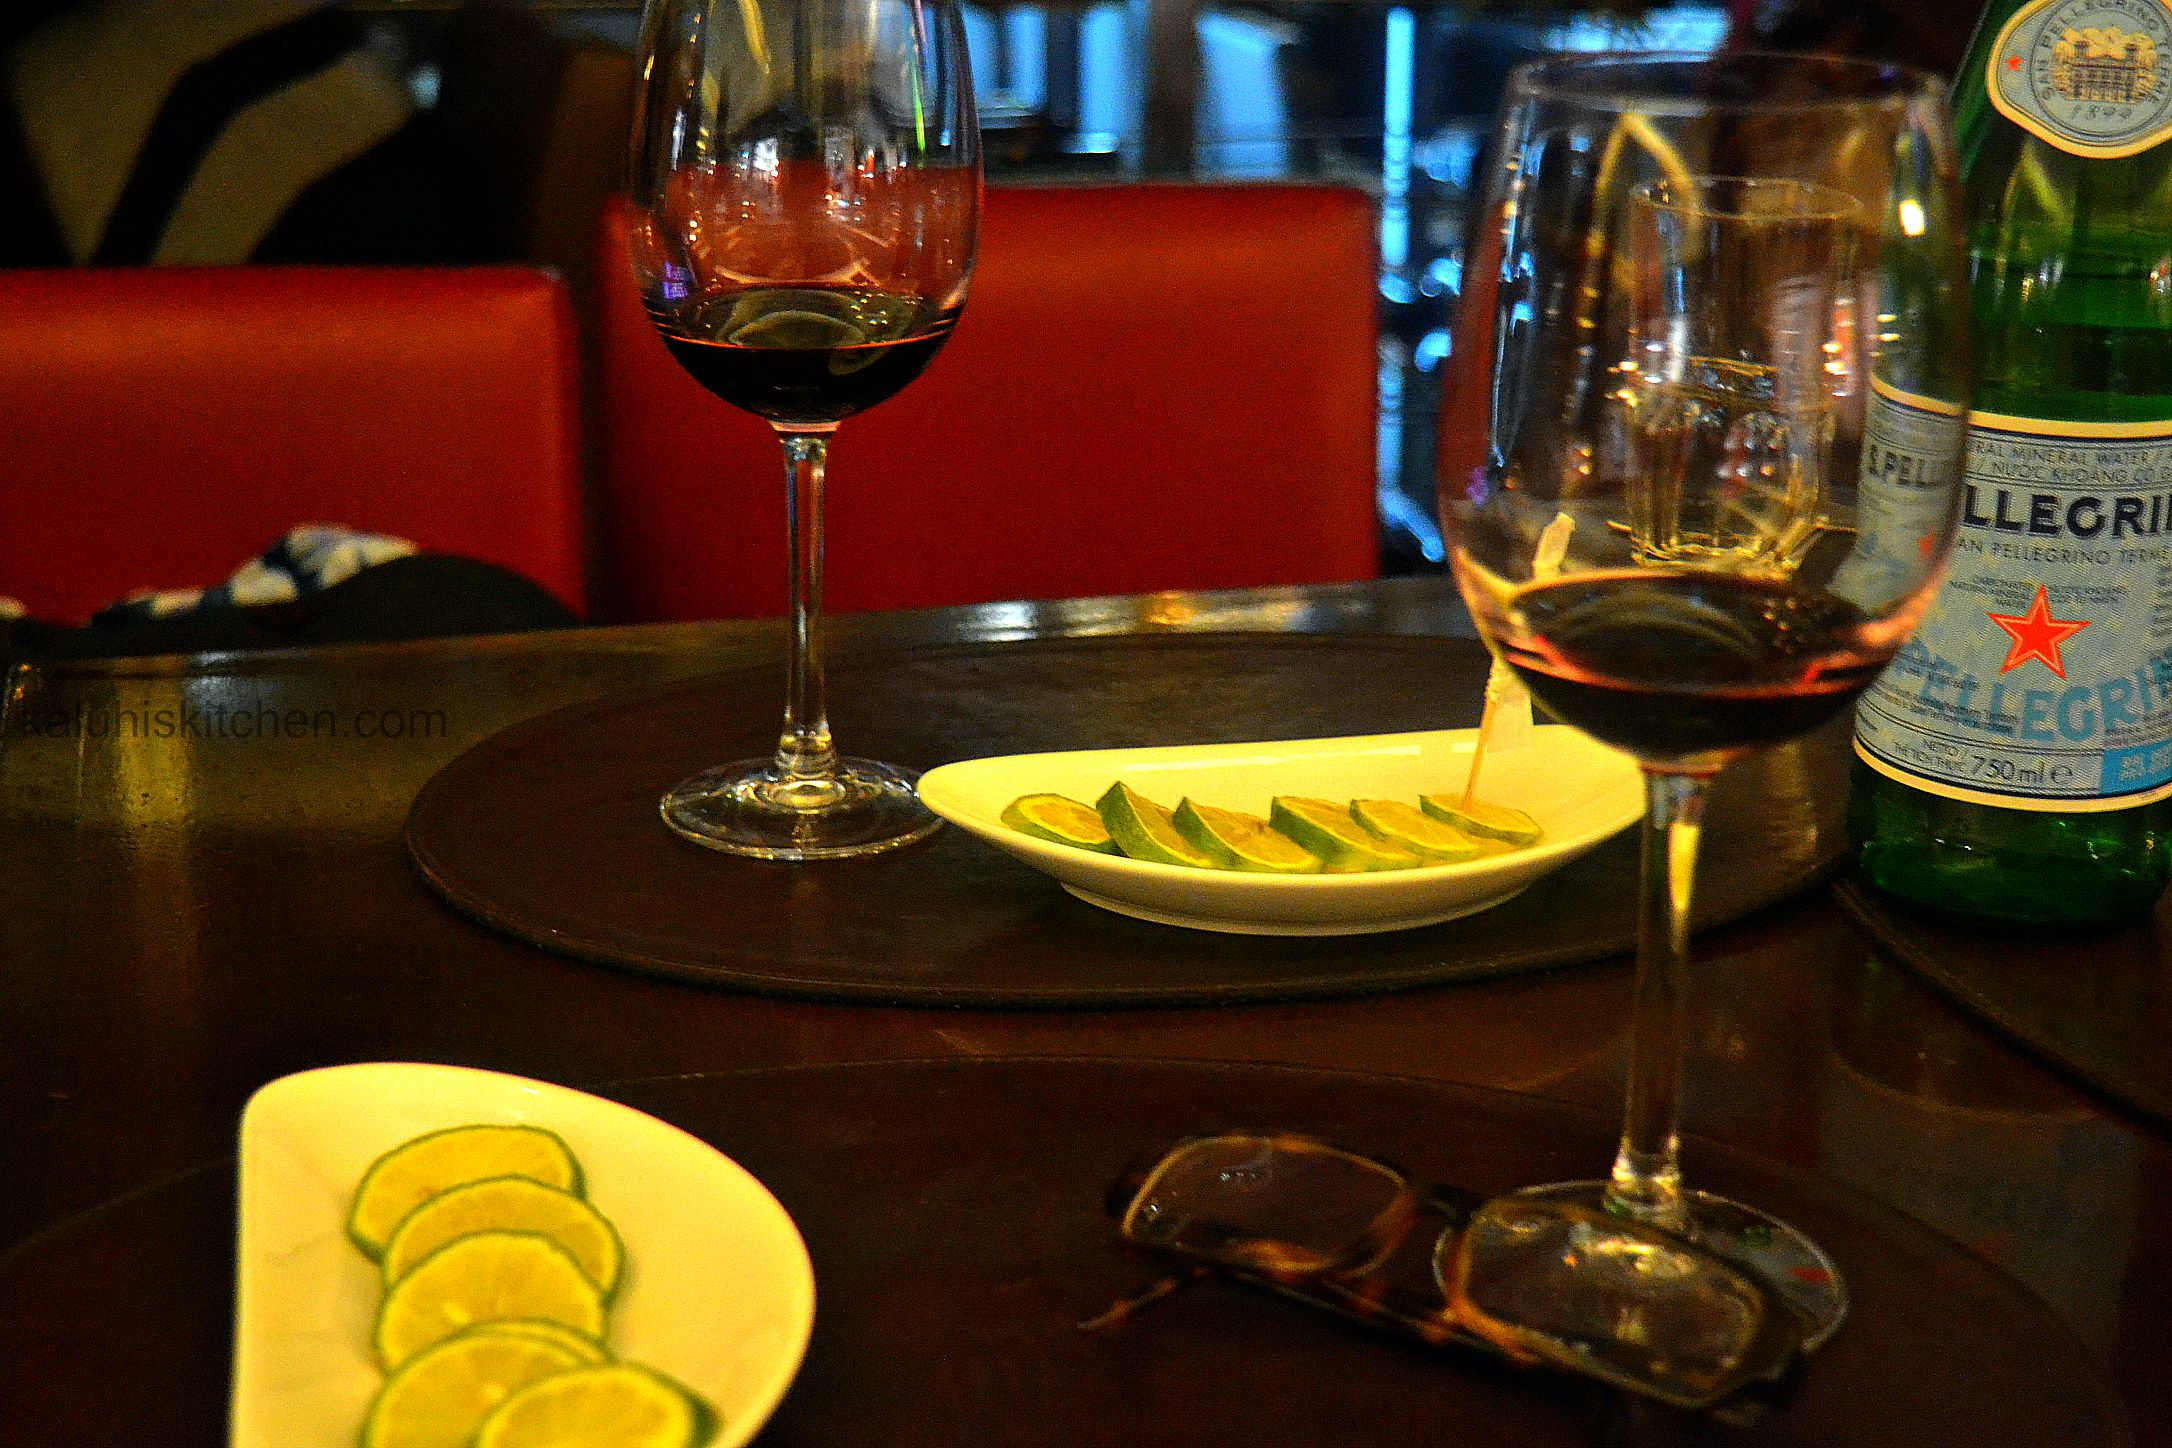 spanish wine at the salt bar and grill_ salt grill and bar array of different wines and other drinks. Only the best found at salt_kaluhiskitchen.com